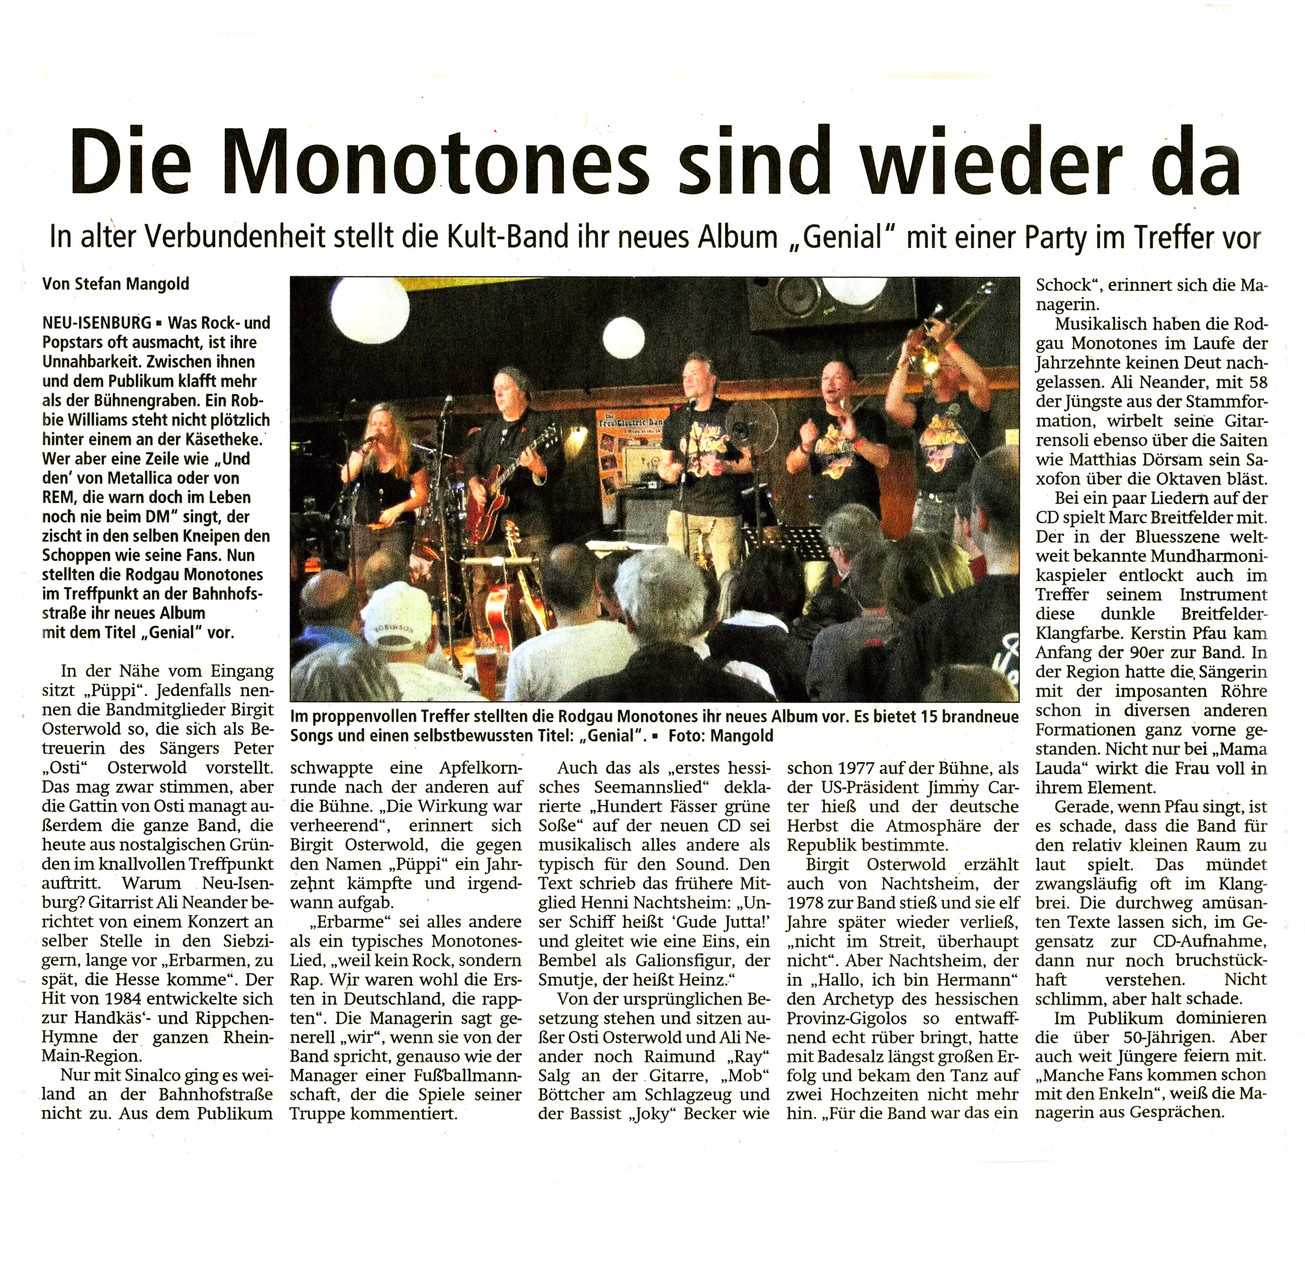 Offenbach Post, 30. September 2015